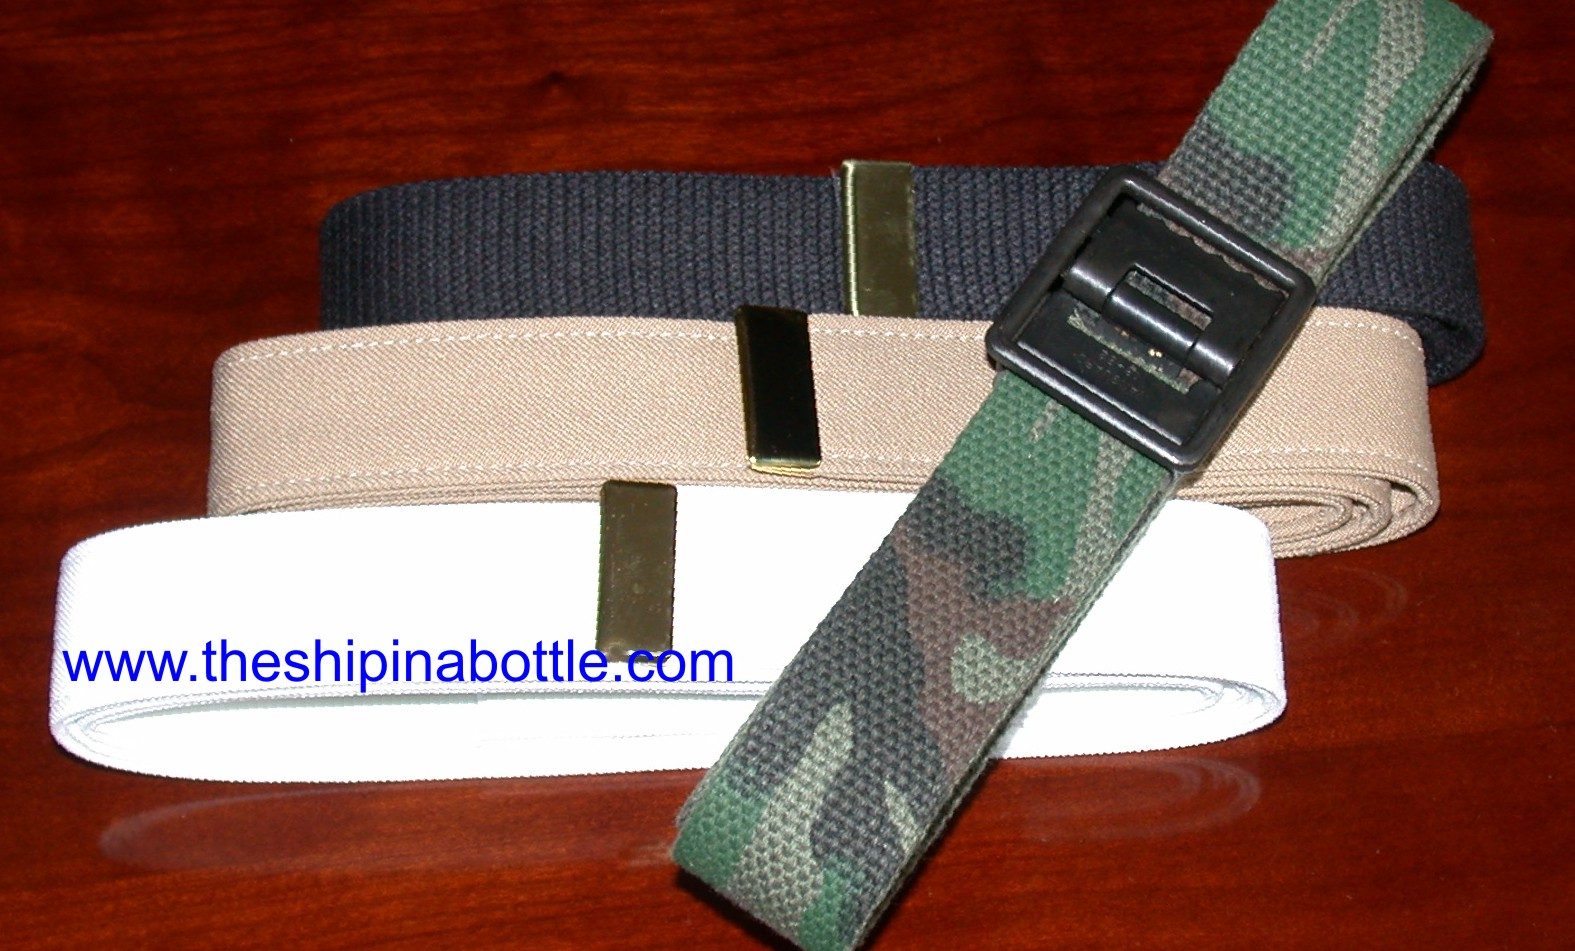 Authentic US Navy and SEABEE Belts - www.theshipinabottle.com